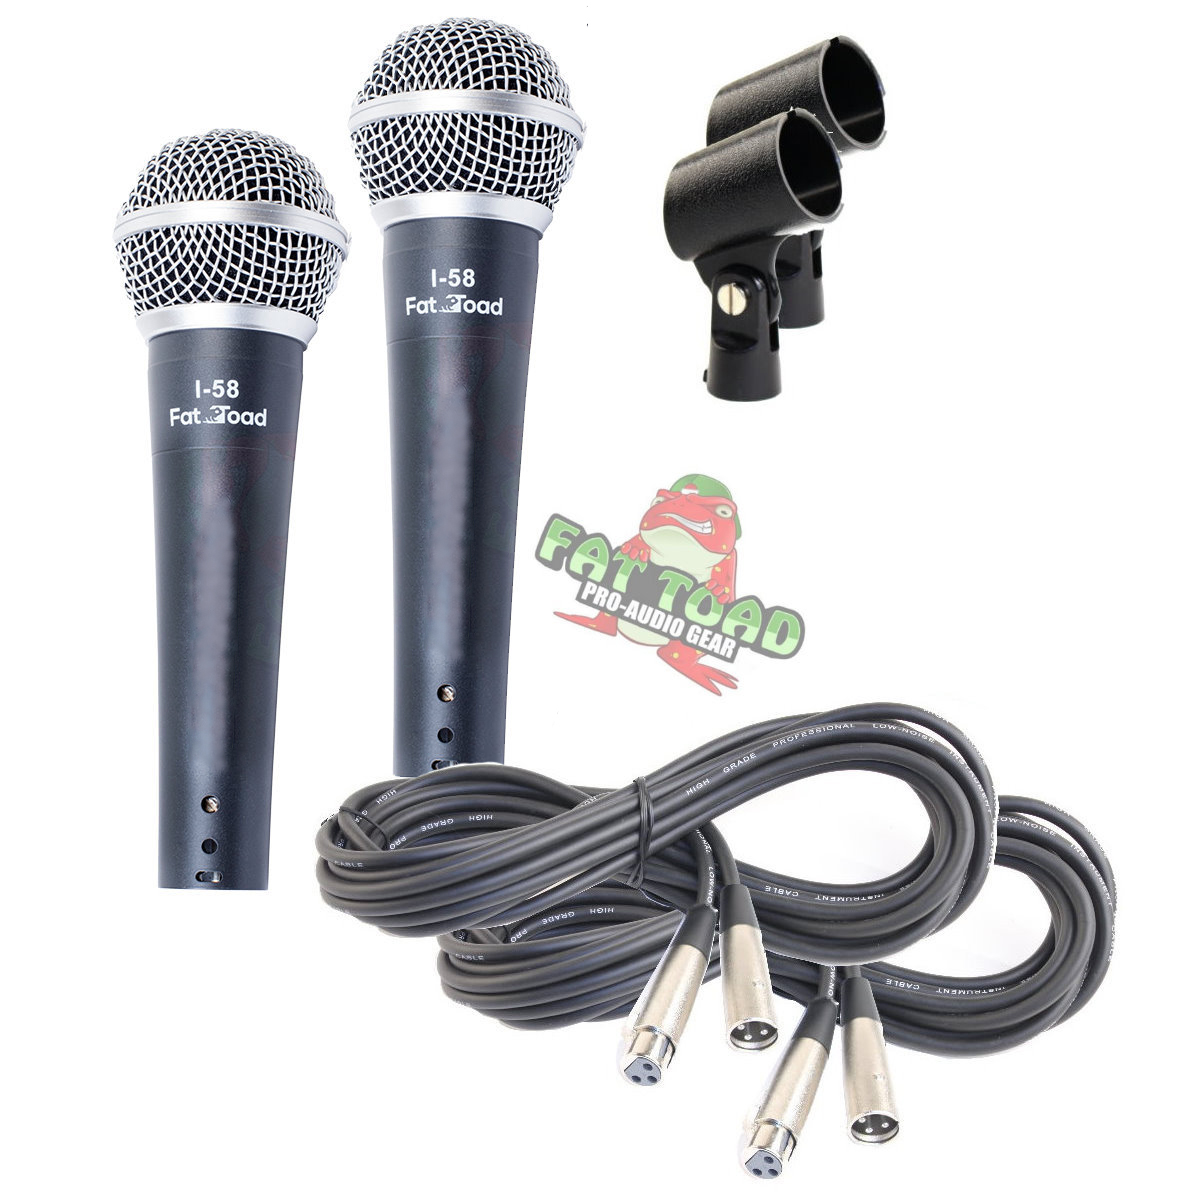 Hand Held Vocal Dynamic Microphone Package With Xlr Mic Cables By 3 Pin Wiring Microphones And Clips 2 Pack Fat Toad